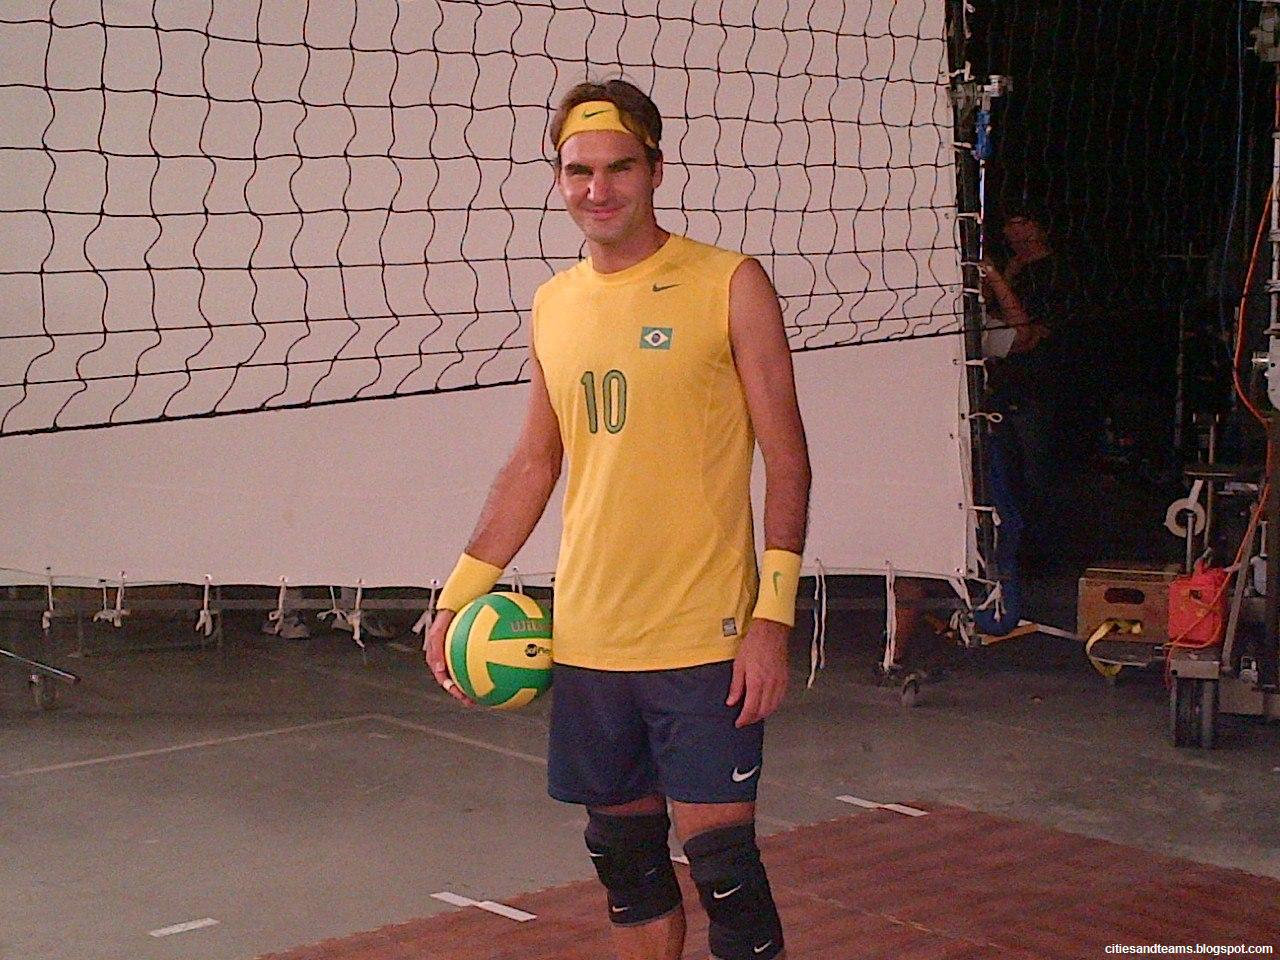 http://1.bp.blogspot.com/-MSqTcx8fJaU/UGcJyR3K4WI/AAAAAAAAH4M/rnYJ_w6FWF0/s1600/Roger_Federer_Playing_Volleyball_Pose_With_Brazilian_Shirt_Hd_Desktop_Wallpaper_citiesandteams.blogspot.com.jpg